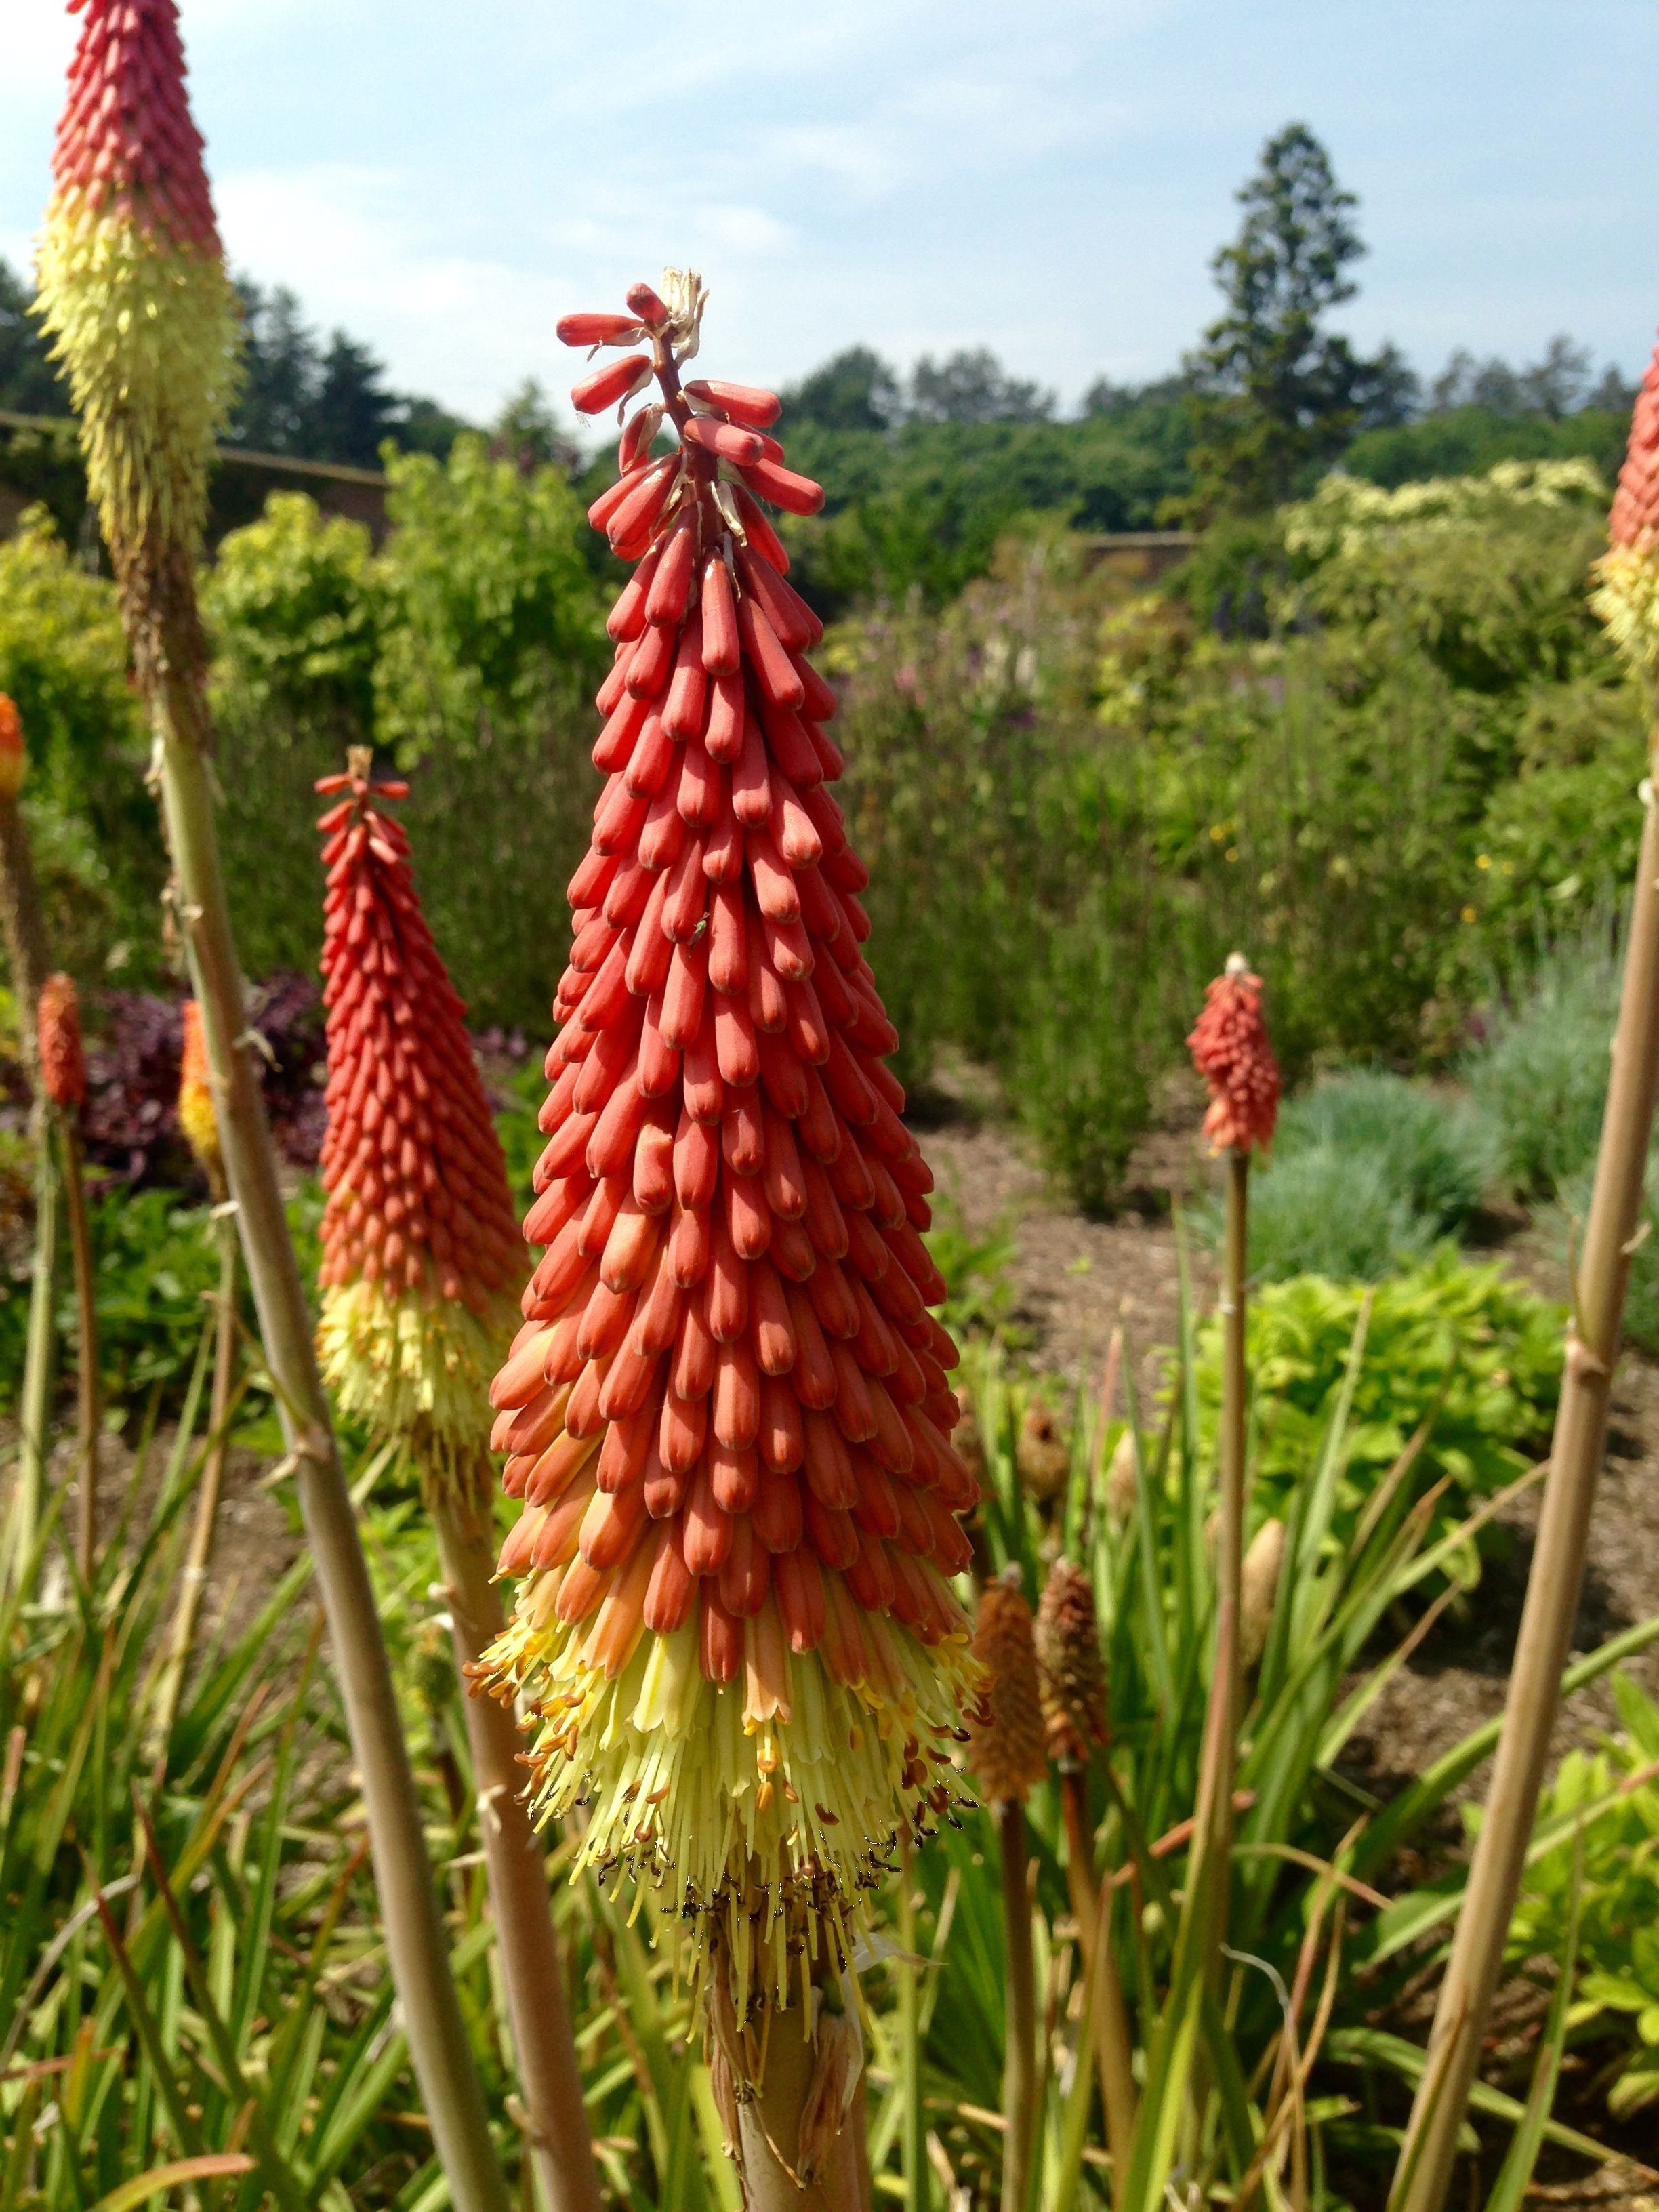 Red Hot Pokers in the Walled Garden at Holkham Hall in